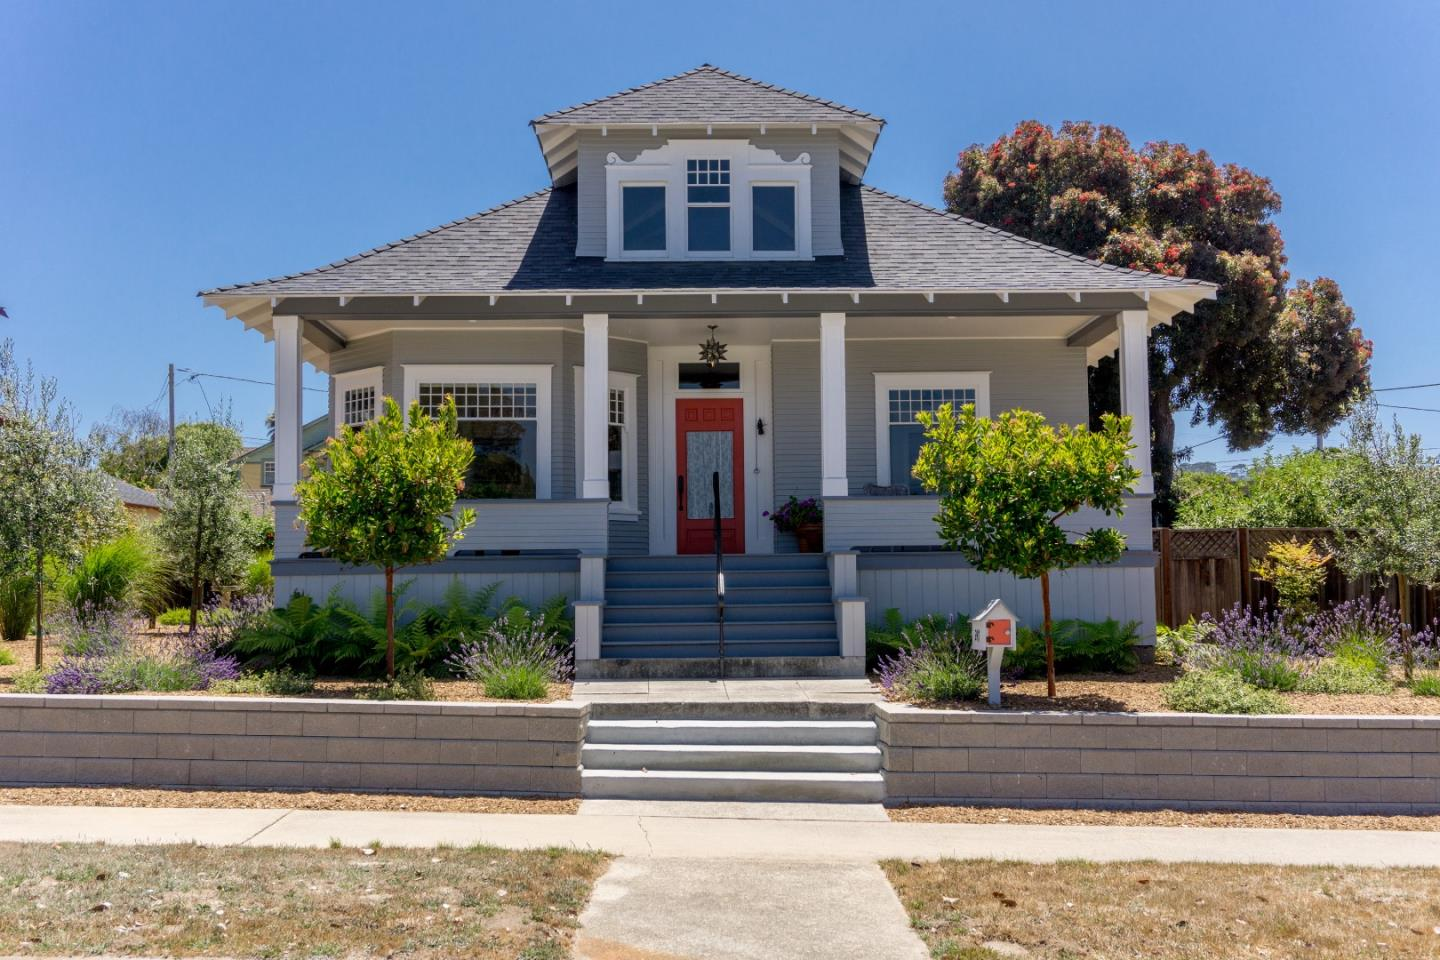 Single Family Home for Sale at 247 Pine Avenue Pacific Grove, California 93950 United States